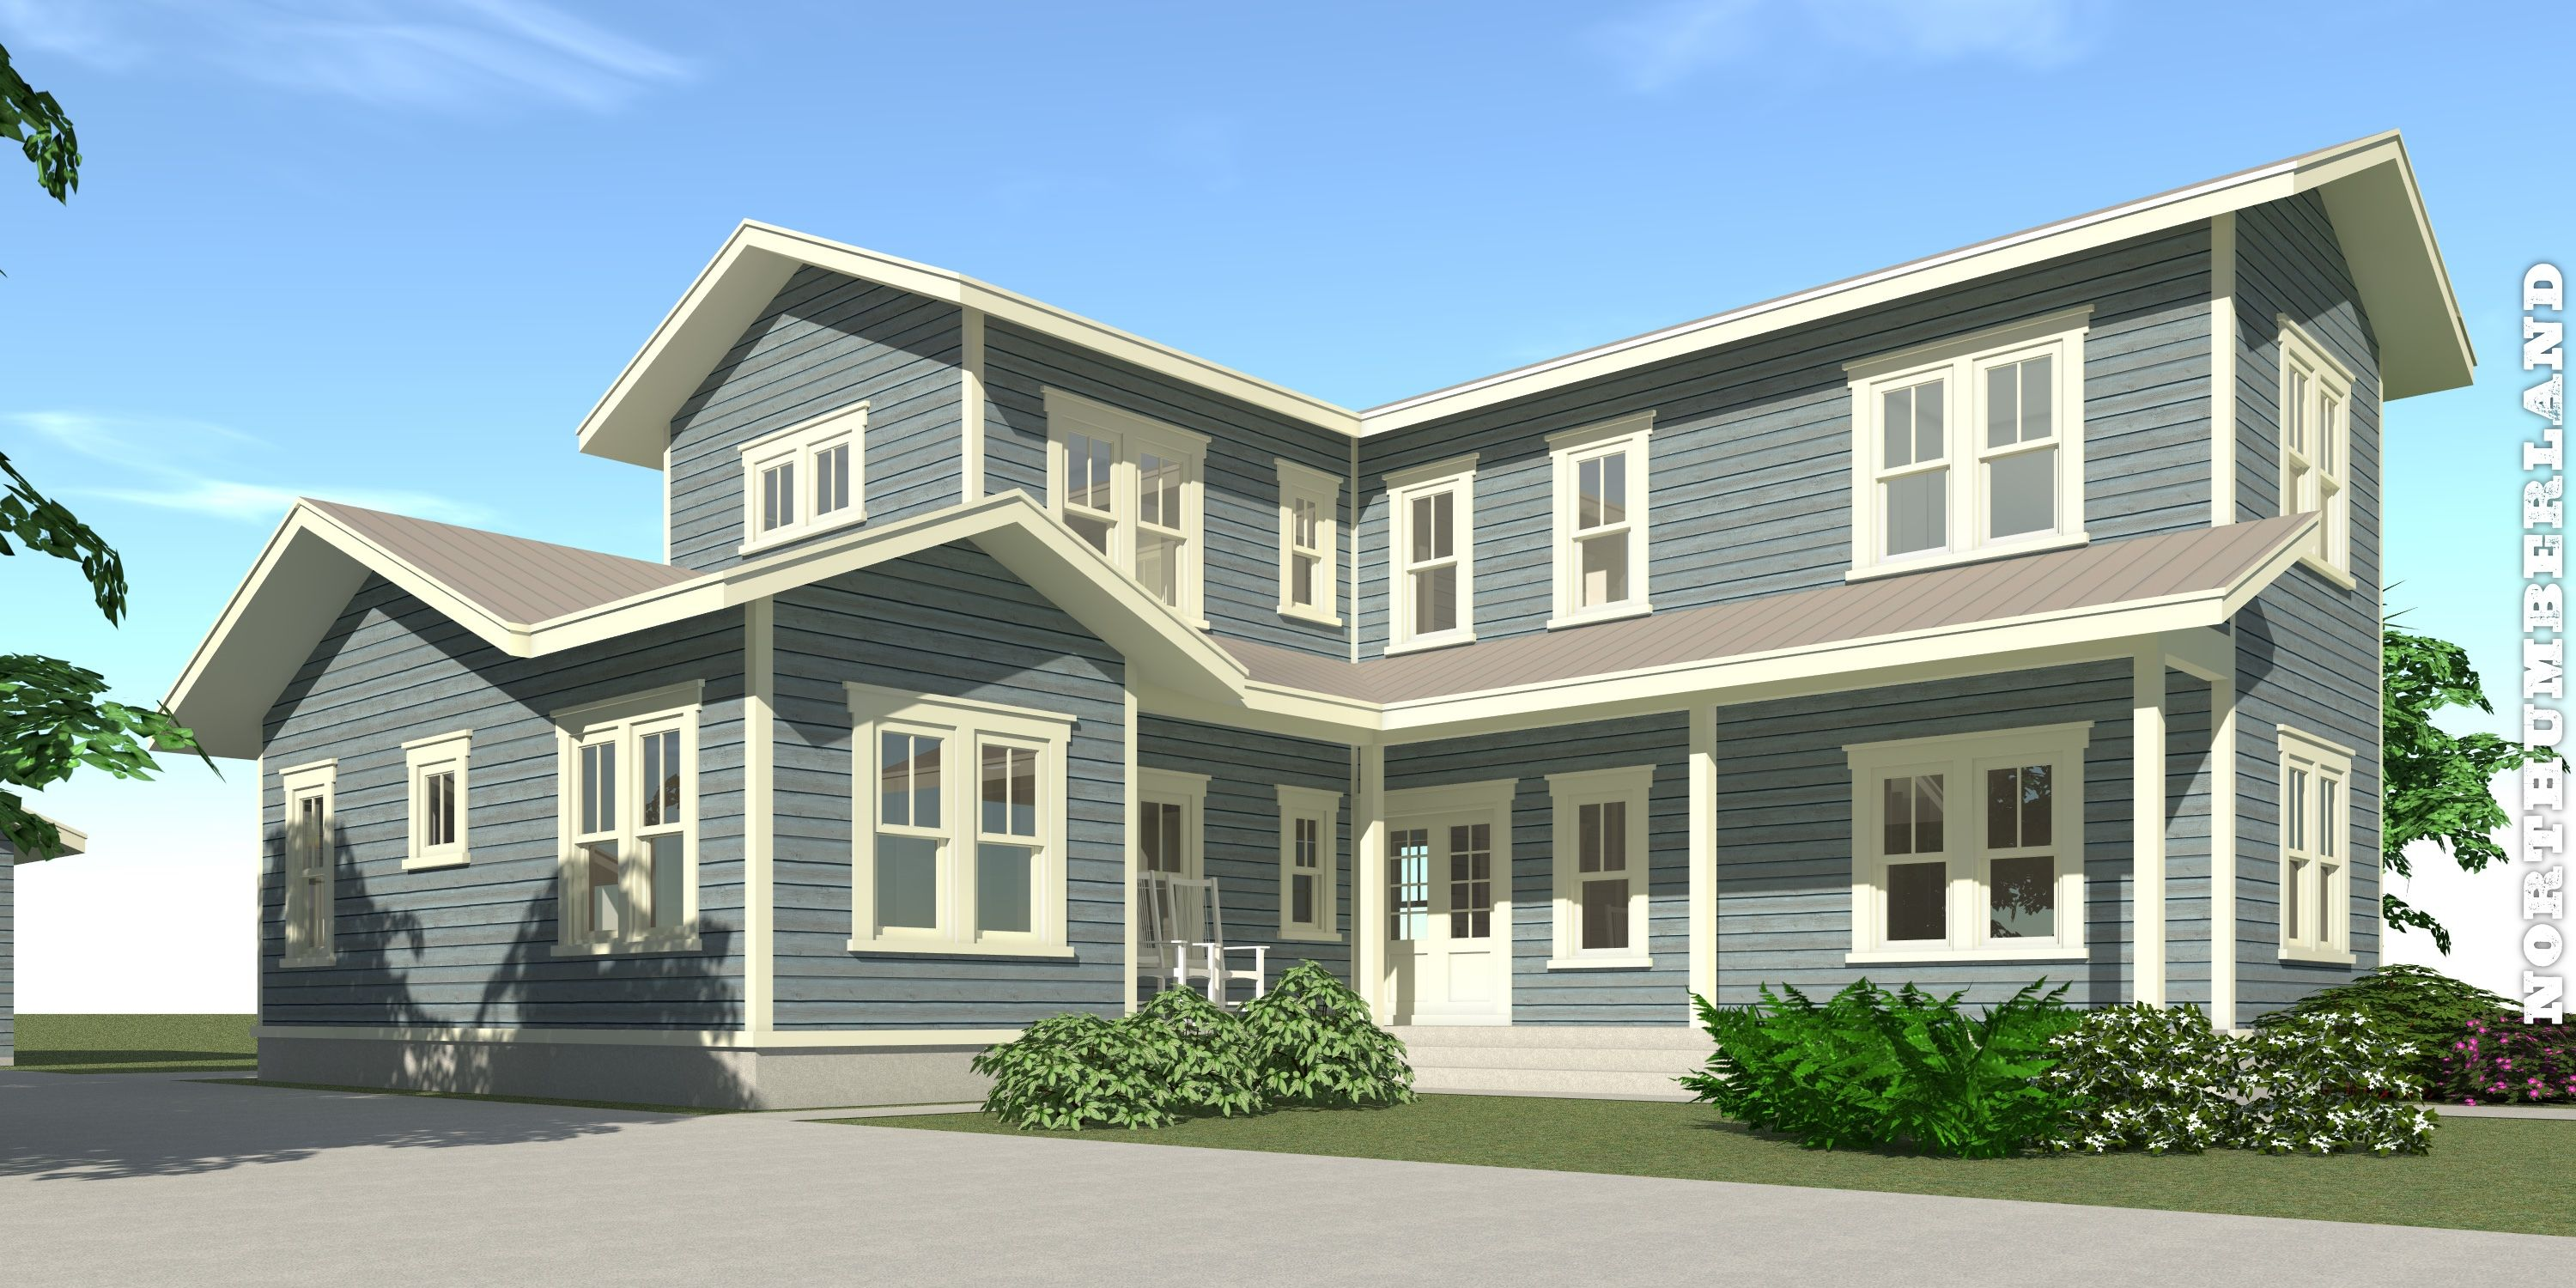 Northumberland house plan shop house plans farmhouse plans and